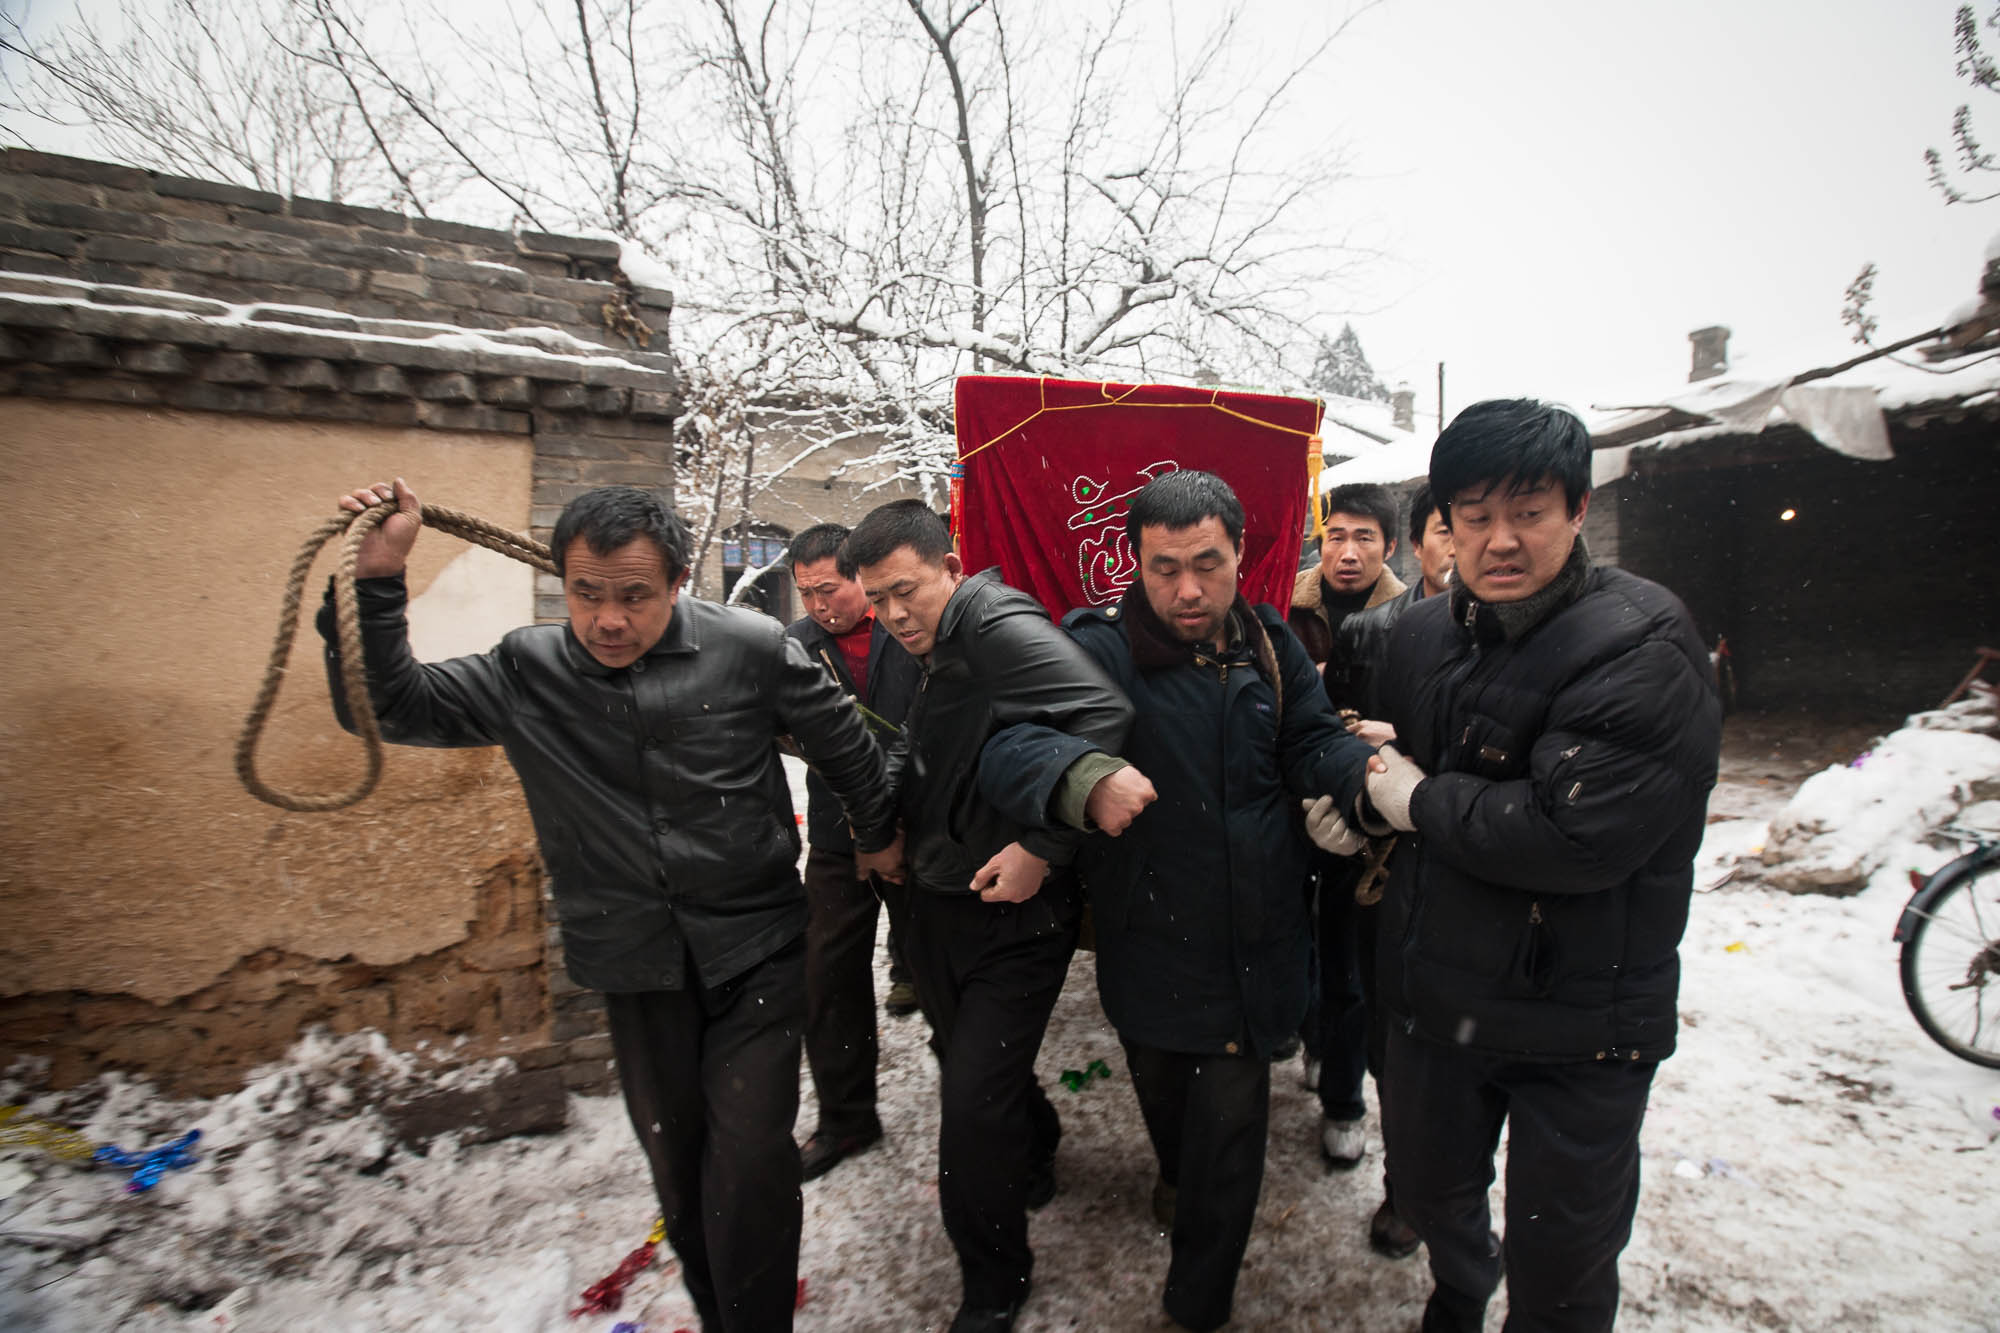 carrying the coffin